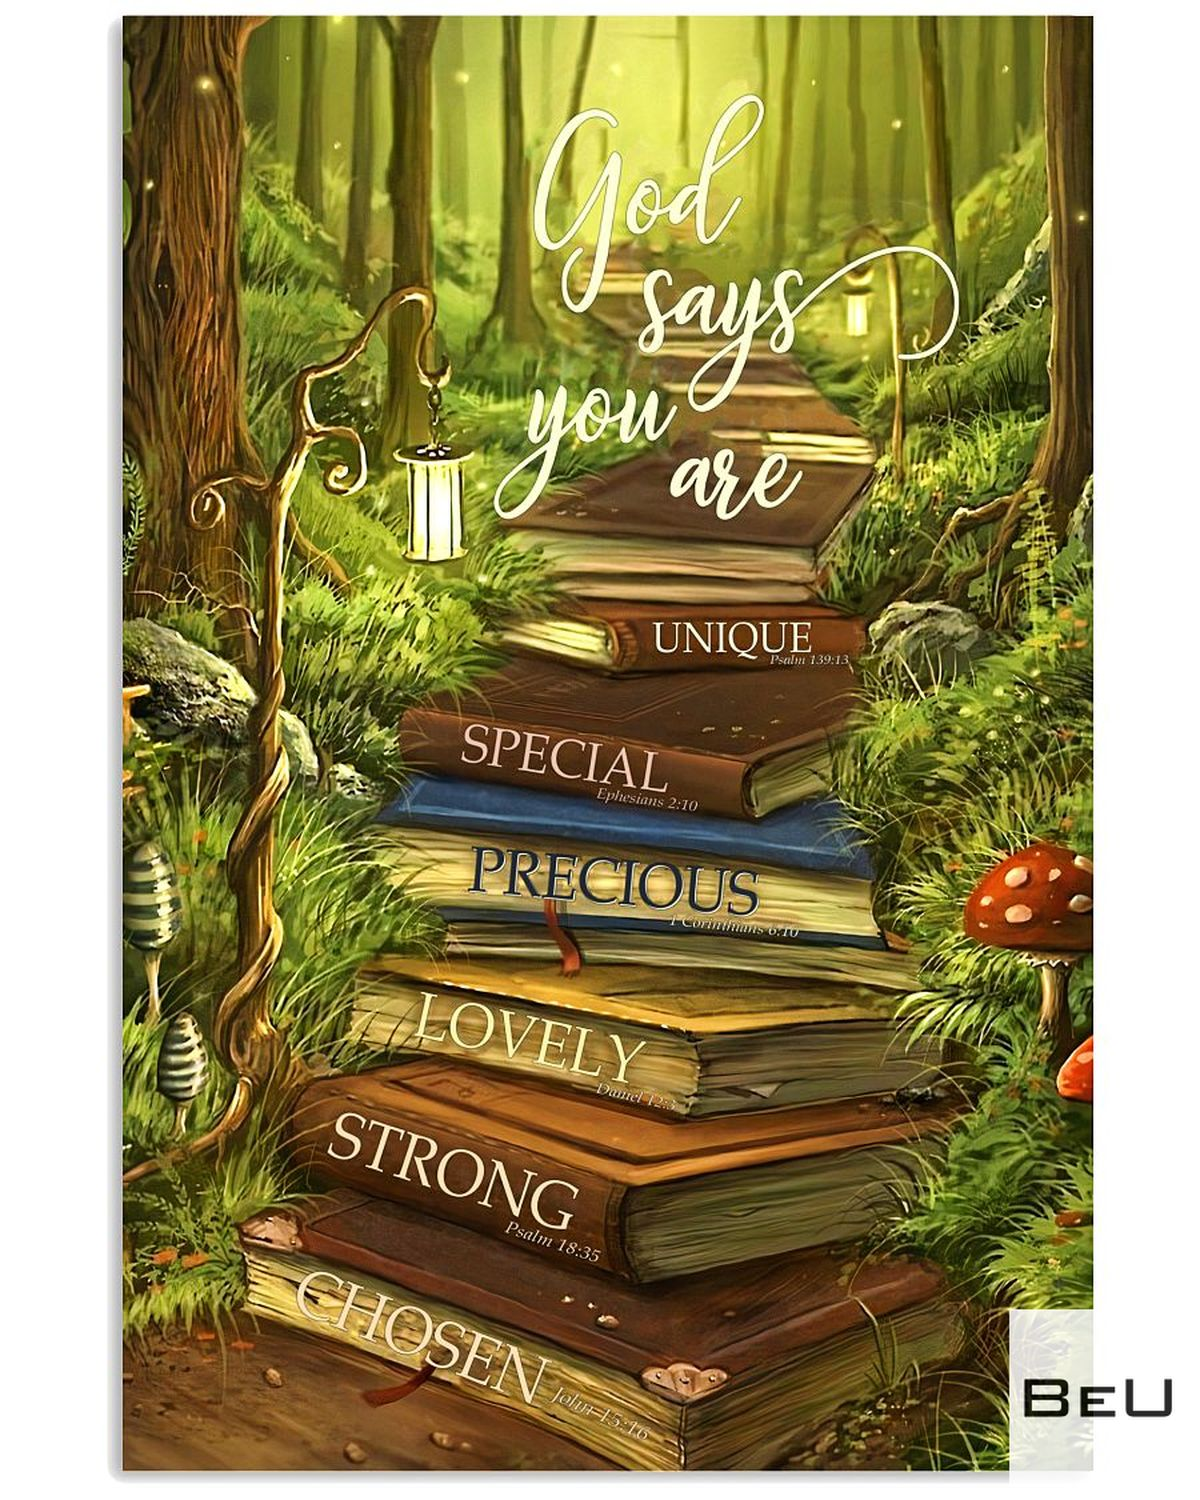 God Says You Are Unique Special Precious Lovely Strong Chosen Poster